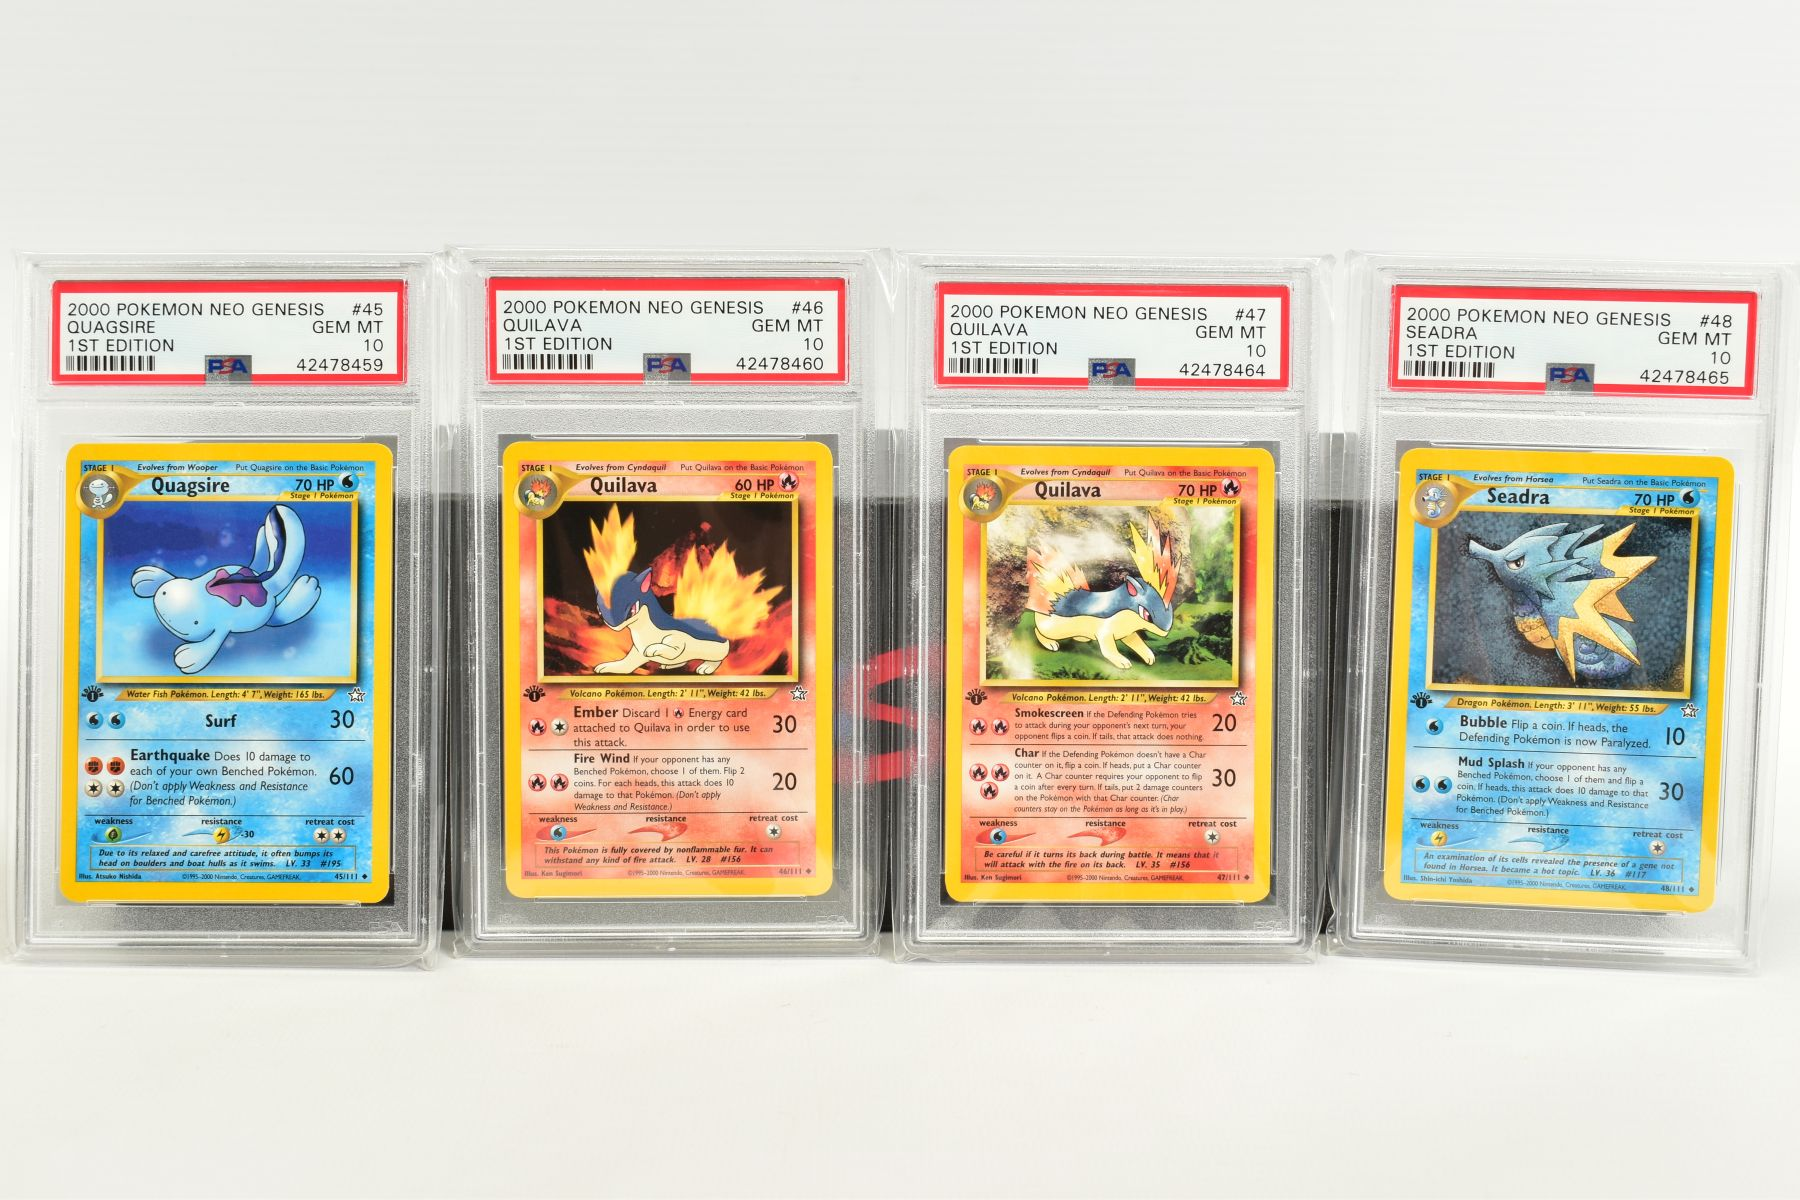 A QUANTITY OF PSA GRADED POKEMON 1ST EDITION NEO GENESIS SET CARDS, all are graded GEM MINT 10 and - Image 8 of 24